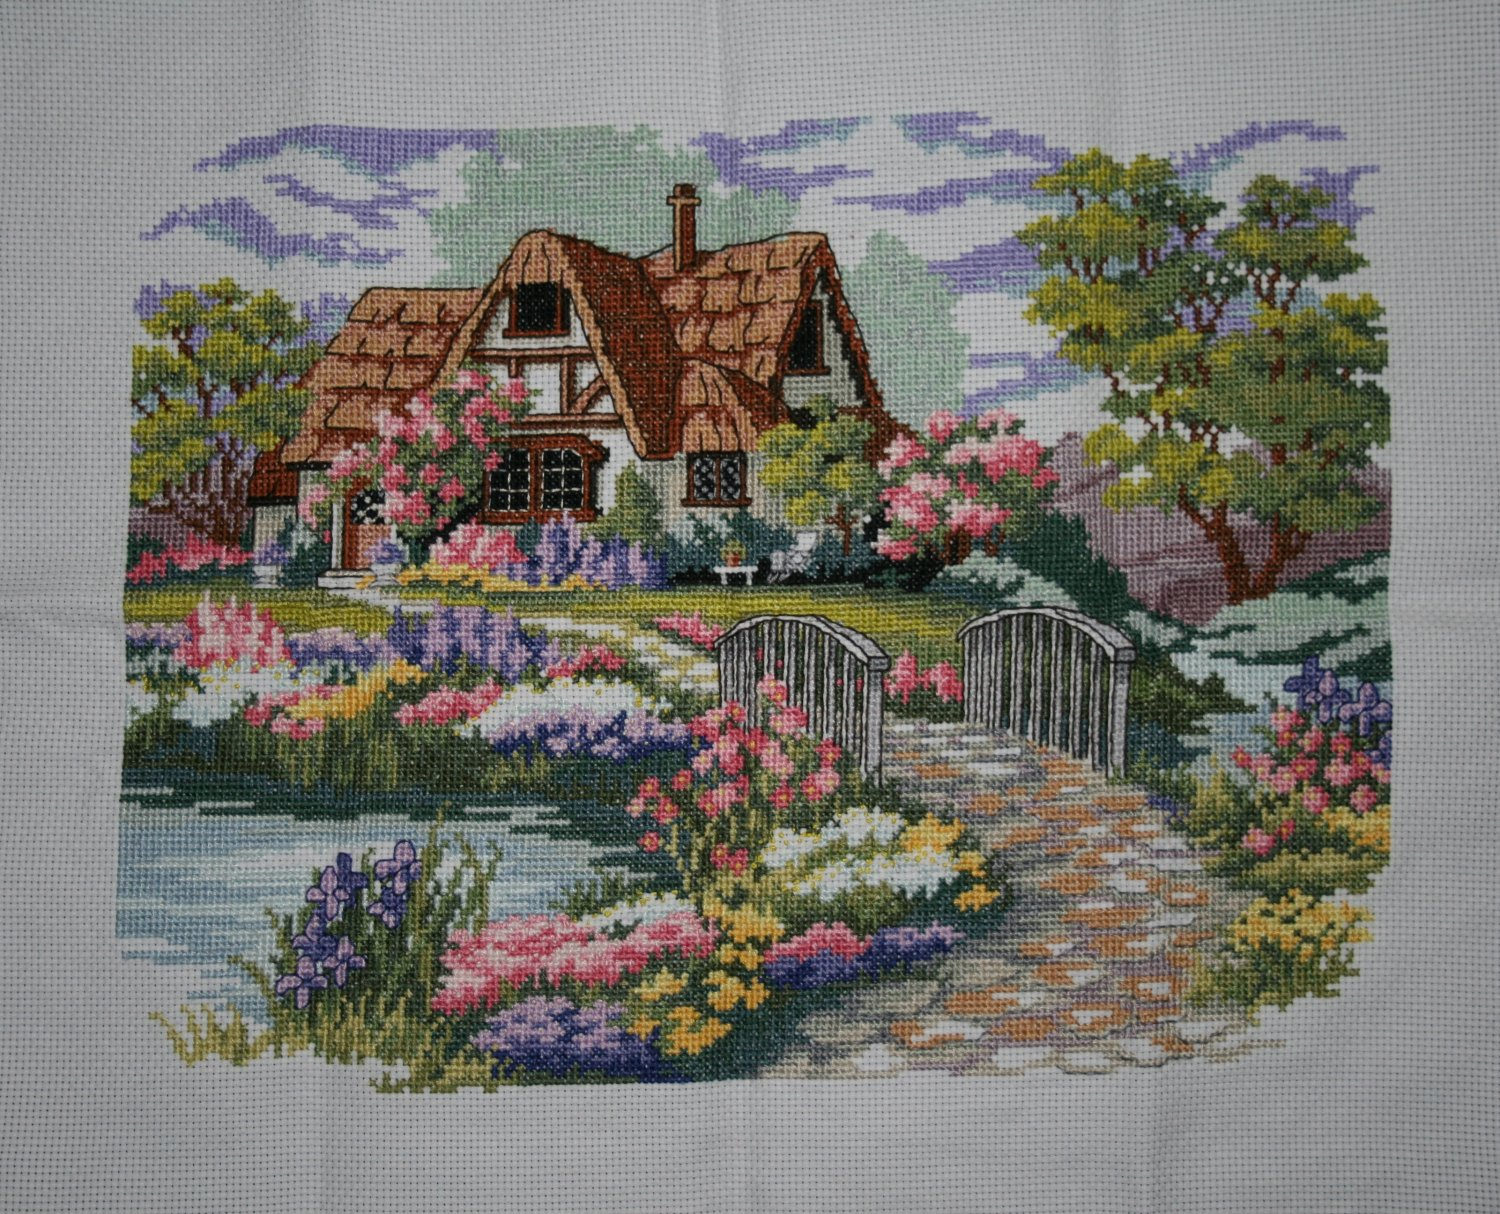 Finished Handmade Cross Stitch of Country Home